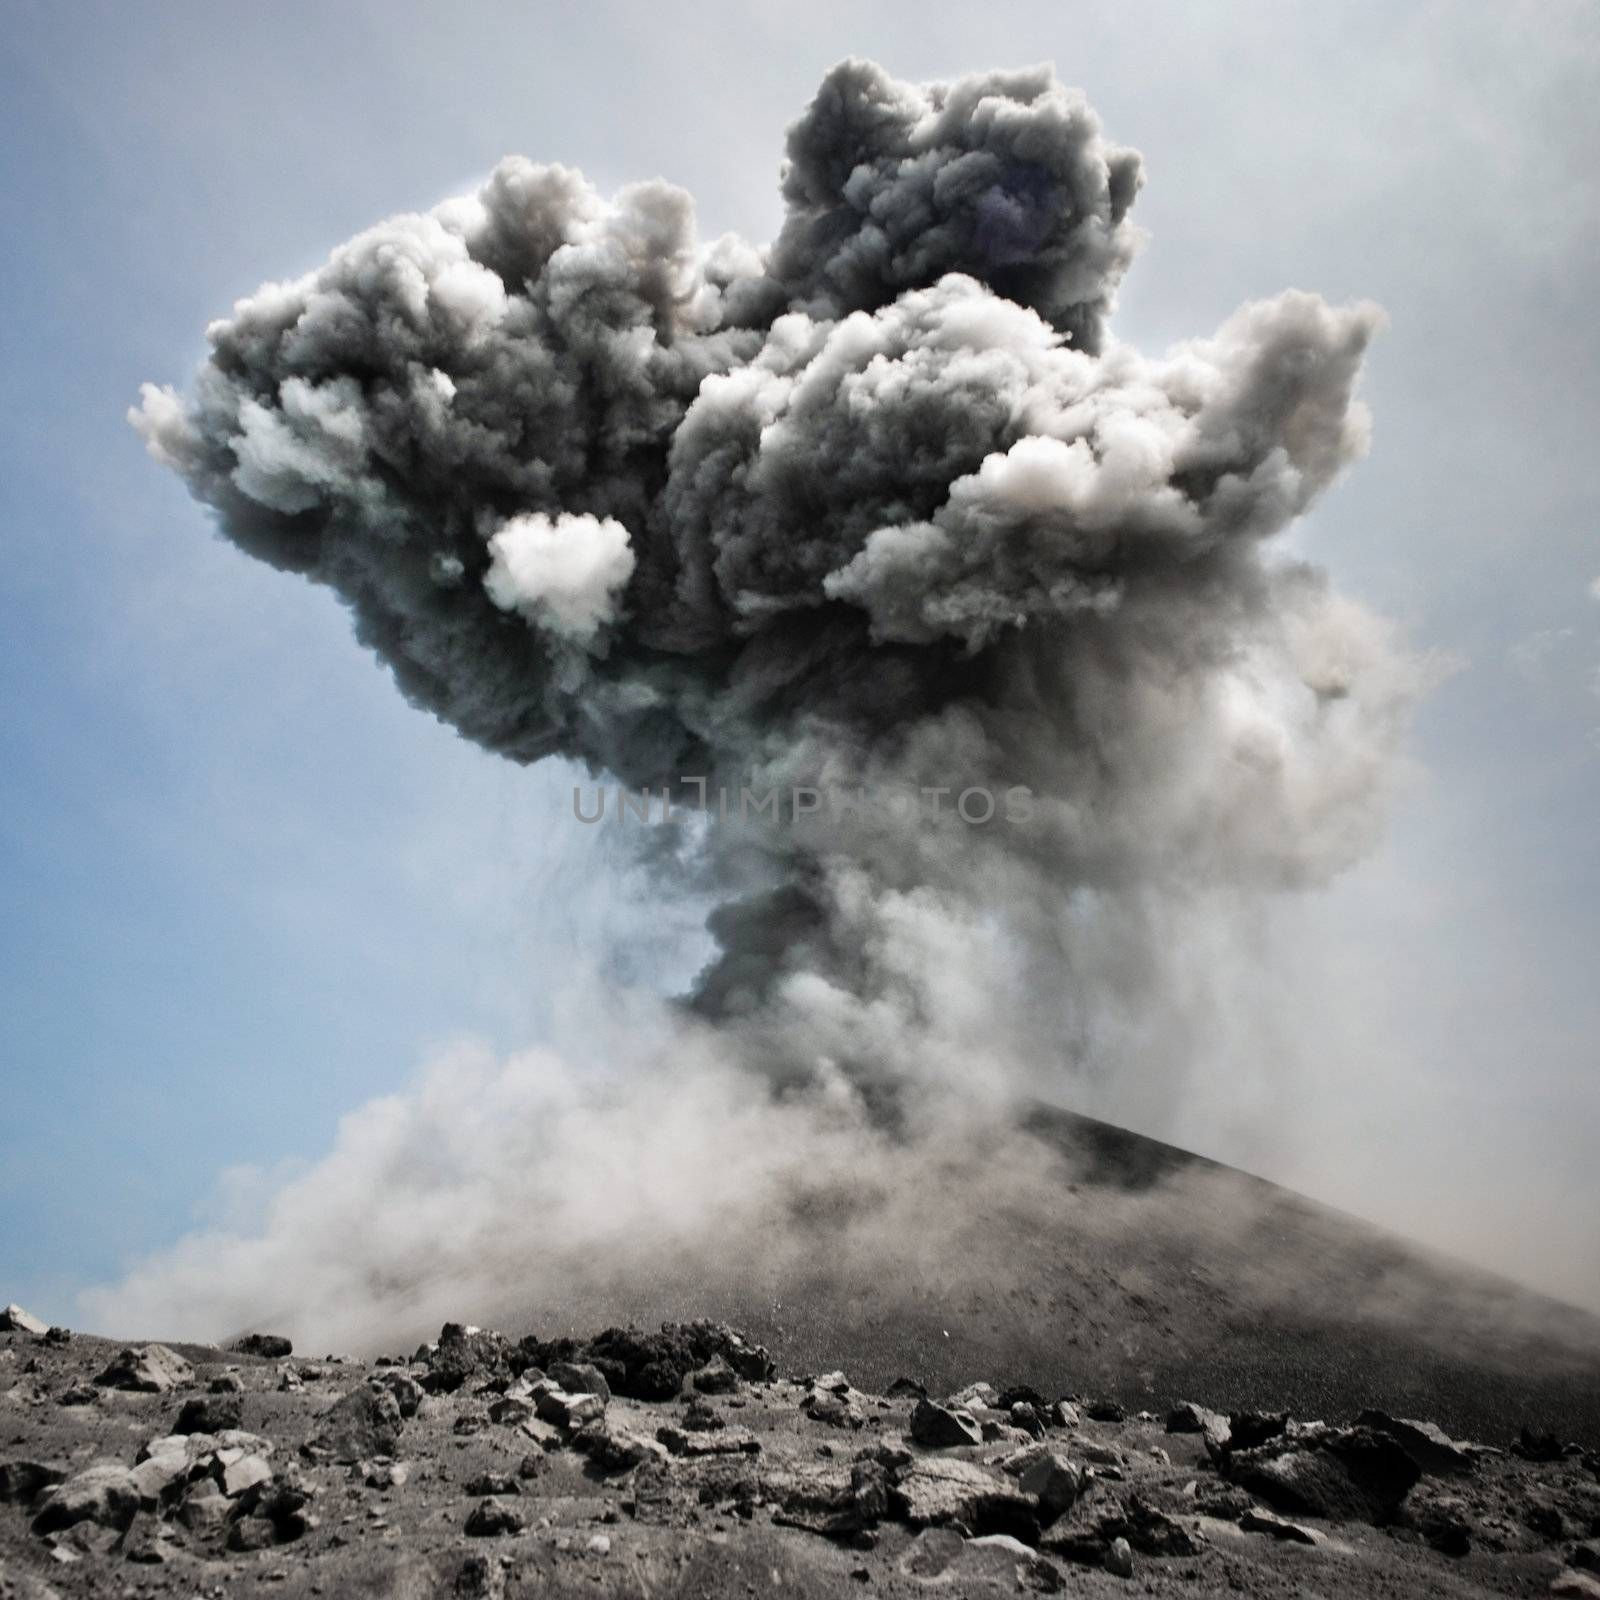 Volcanic eruption in all its dangerous beauty